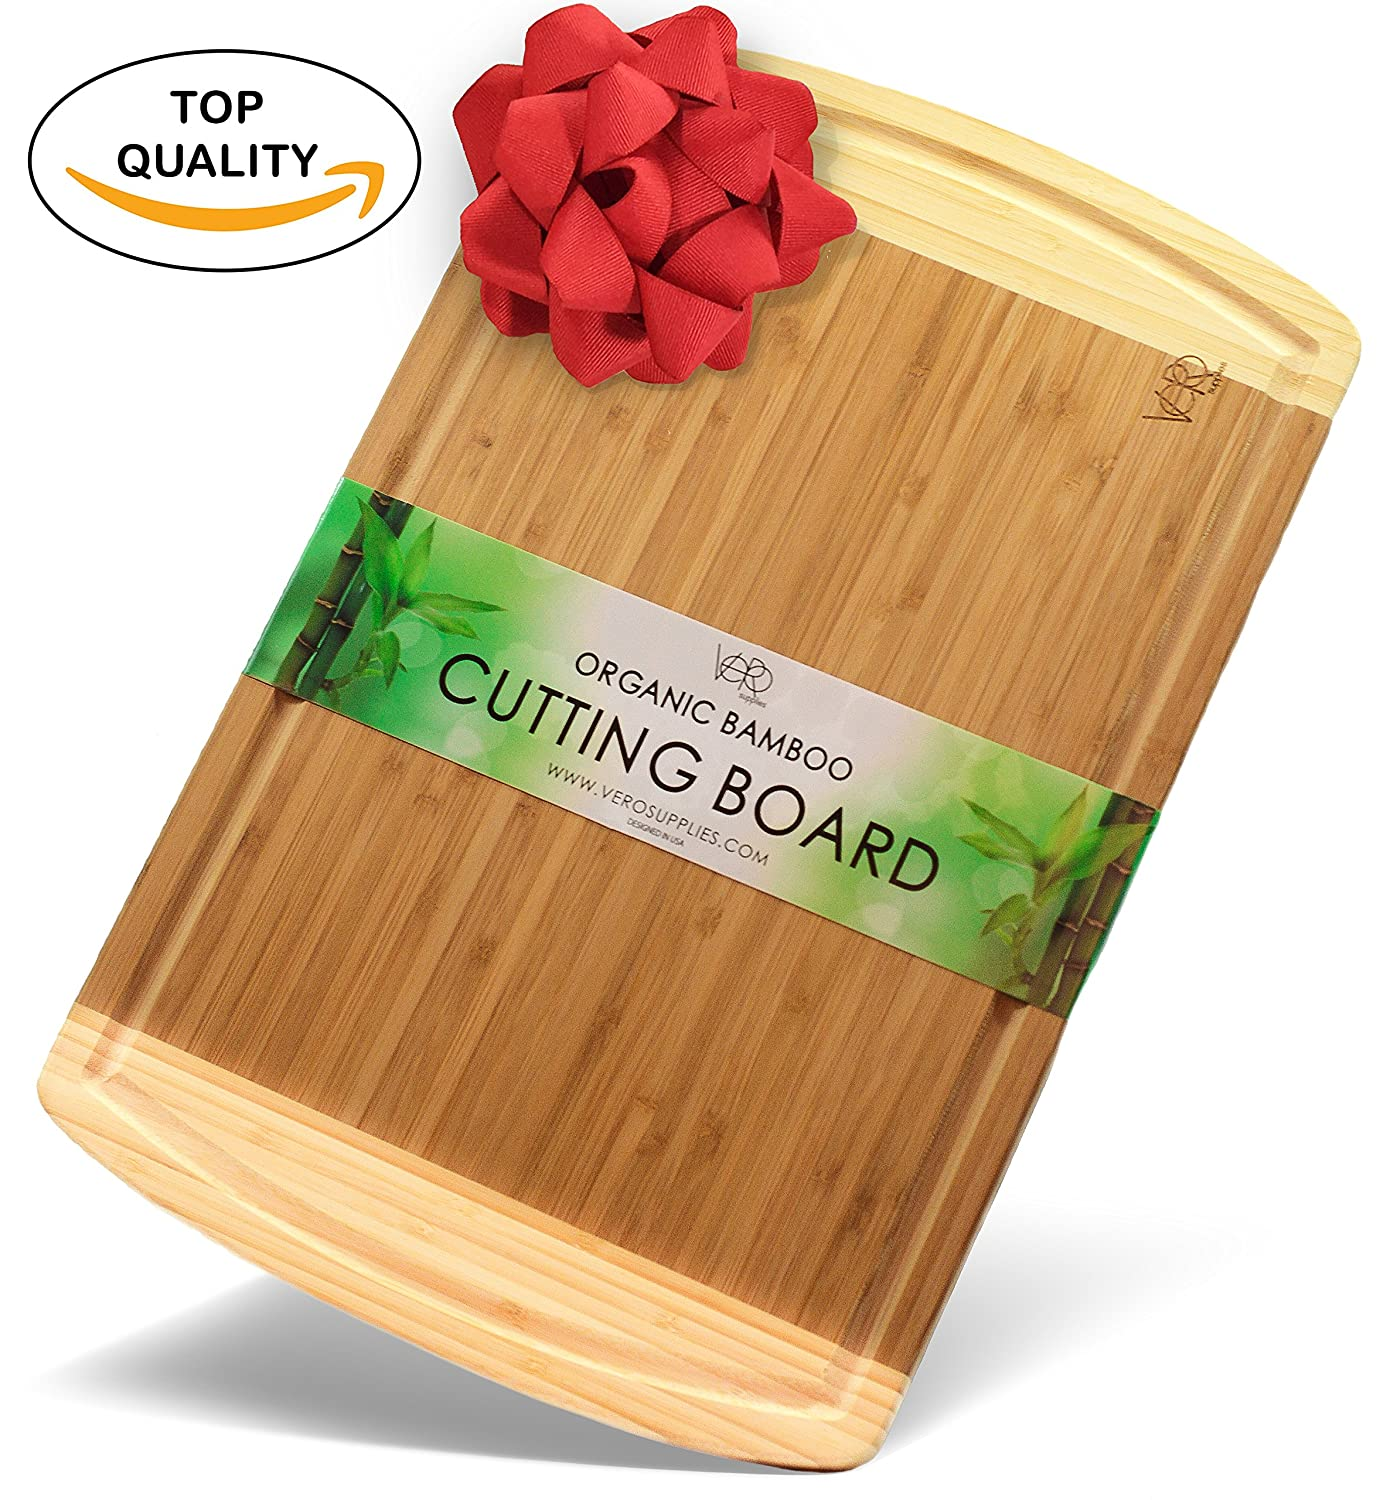 ♻ EXTRA LARGE BAMBOO cutting board with drip juice groove - ORGANIC and ANTIMICROBIAL durable thick wood chopping board - The best Wedding or Housewarming gift present